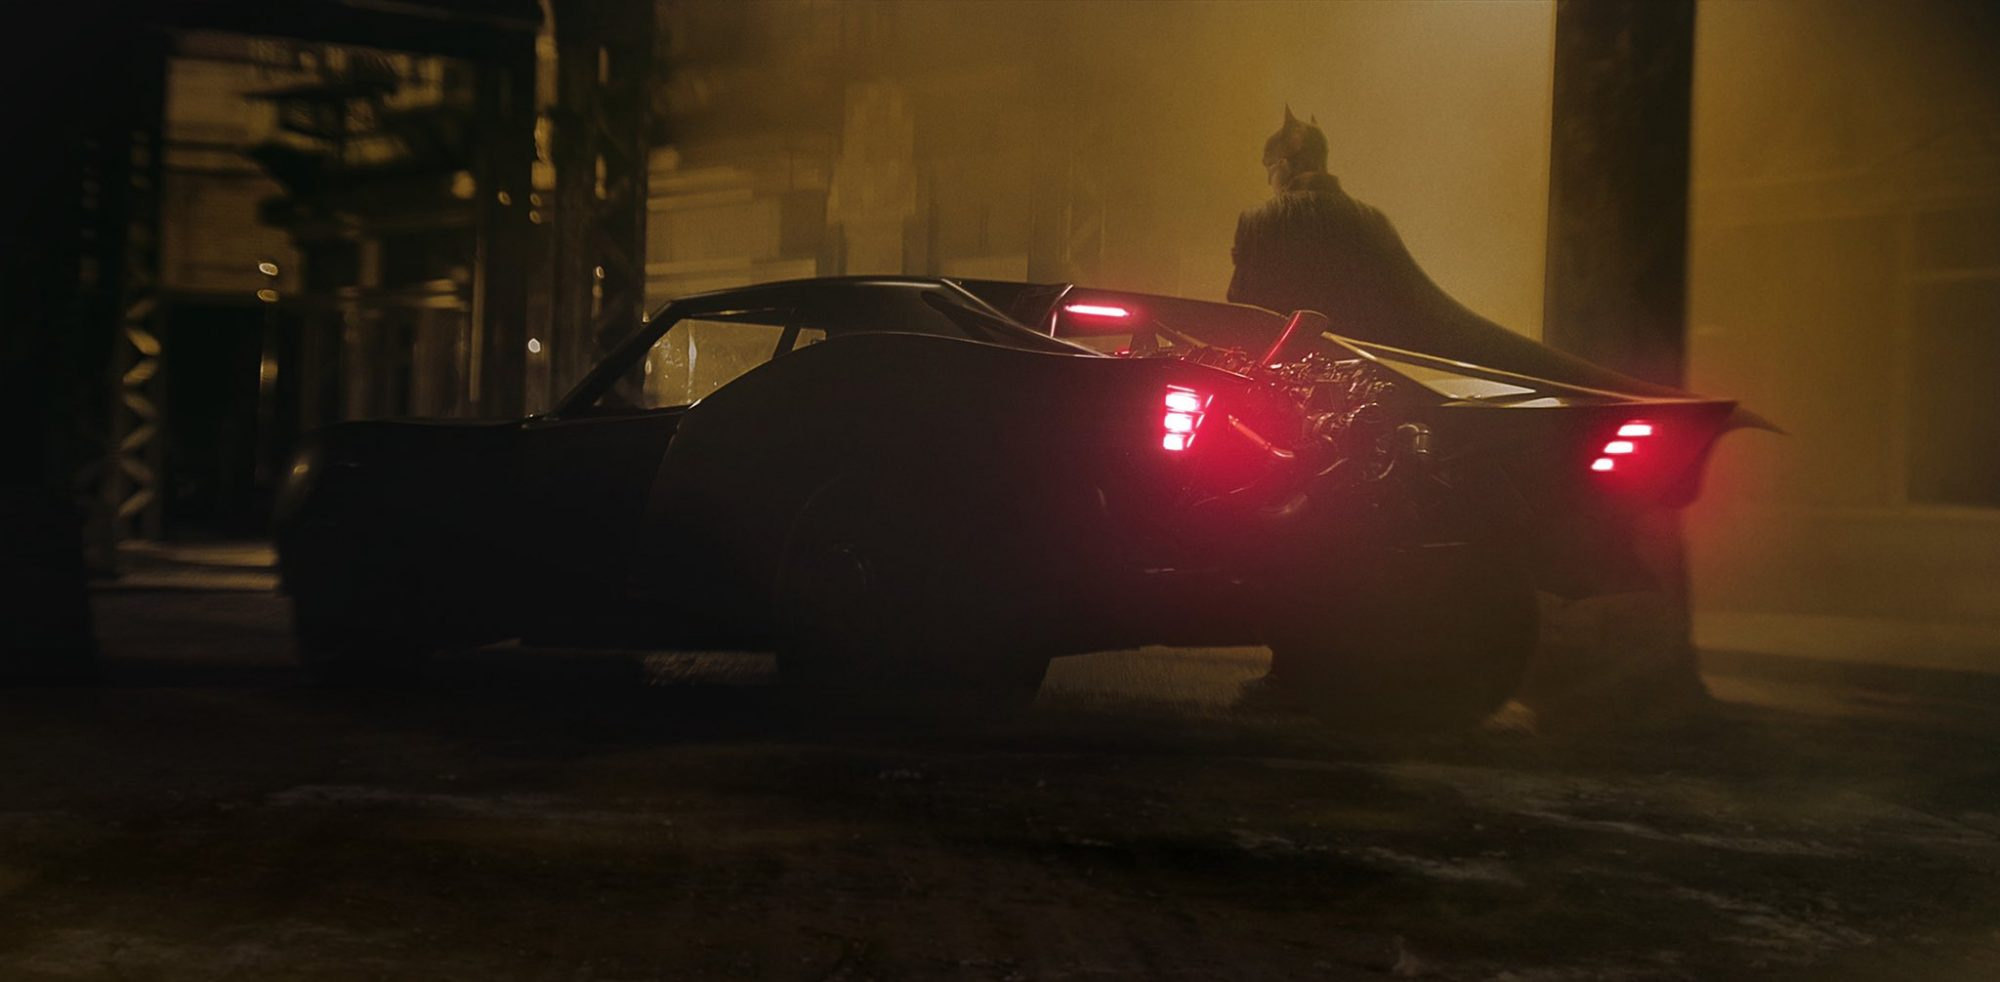 Robert Pattinson as Batman is pictured standing alongside the Batmobile.